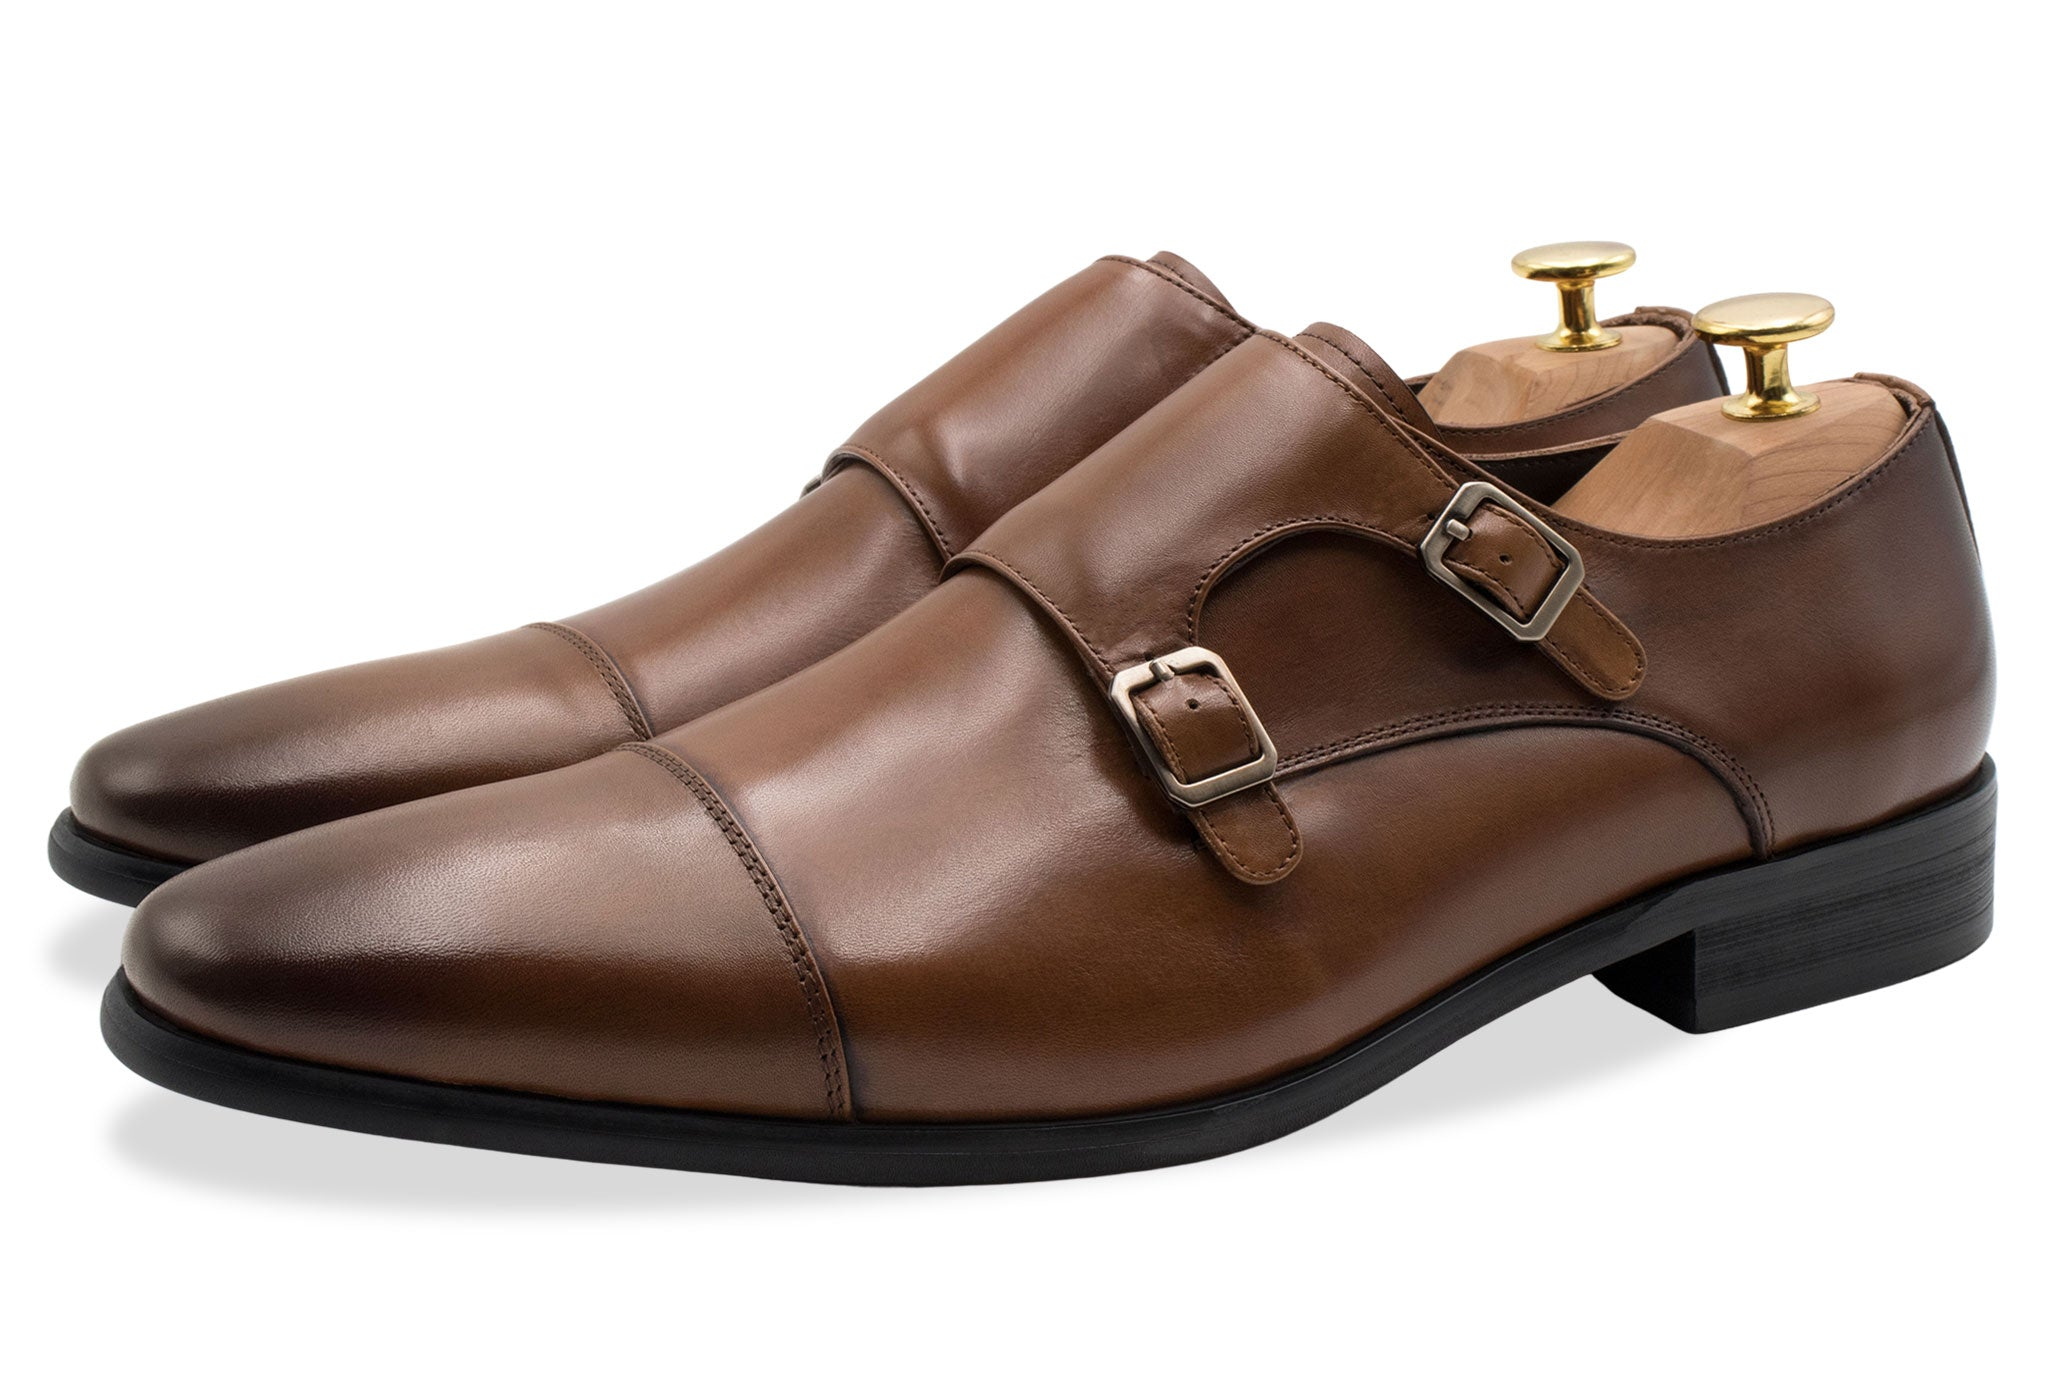 Corrientes Tassle Walnut Loafer Leather Shoes